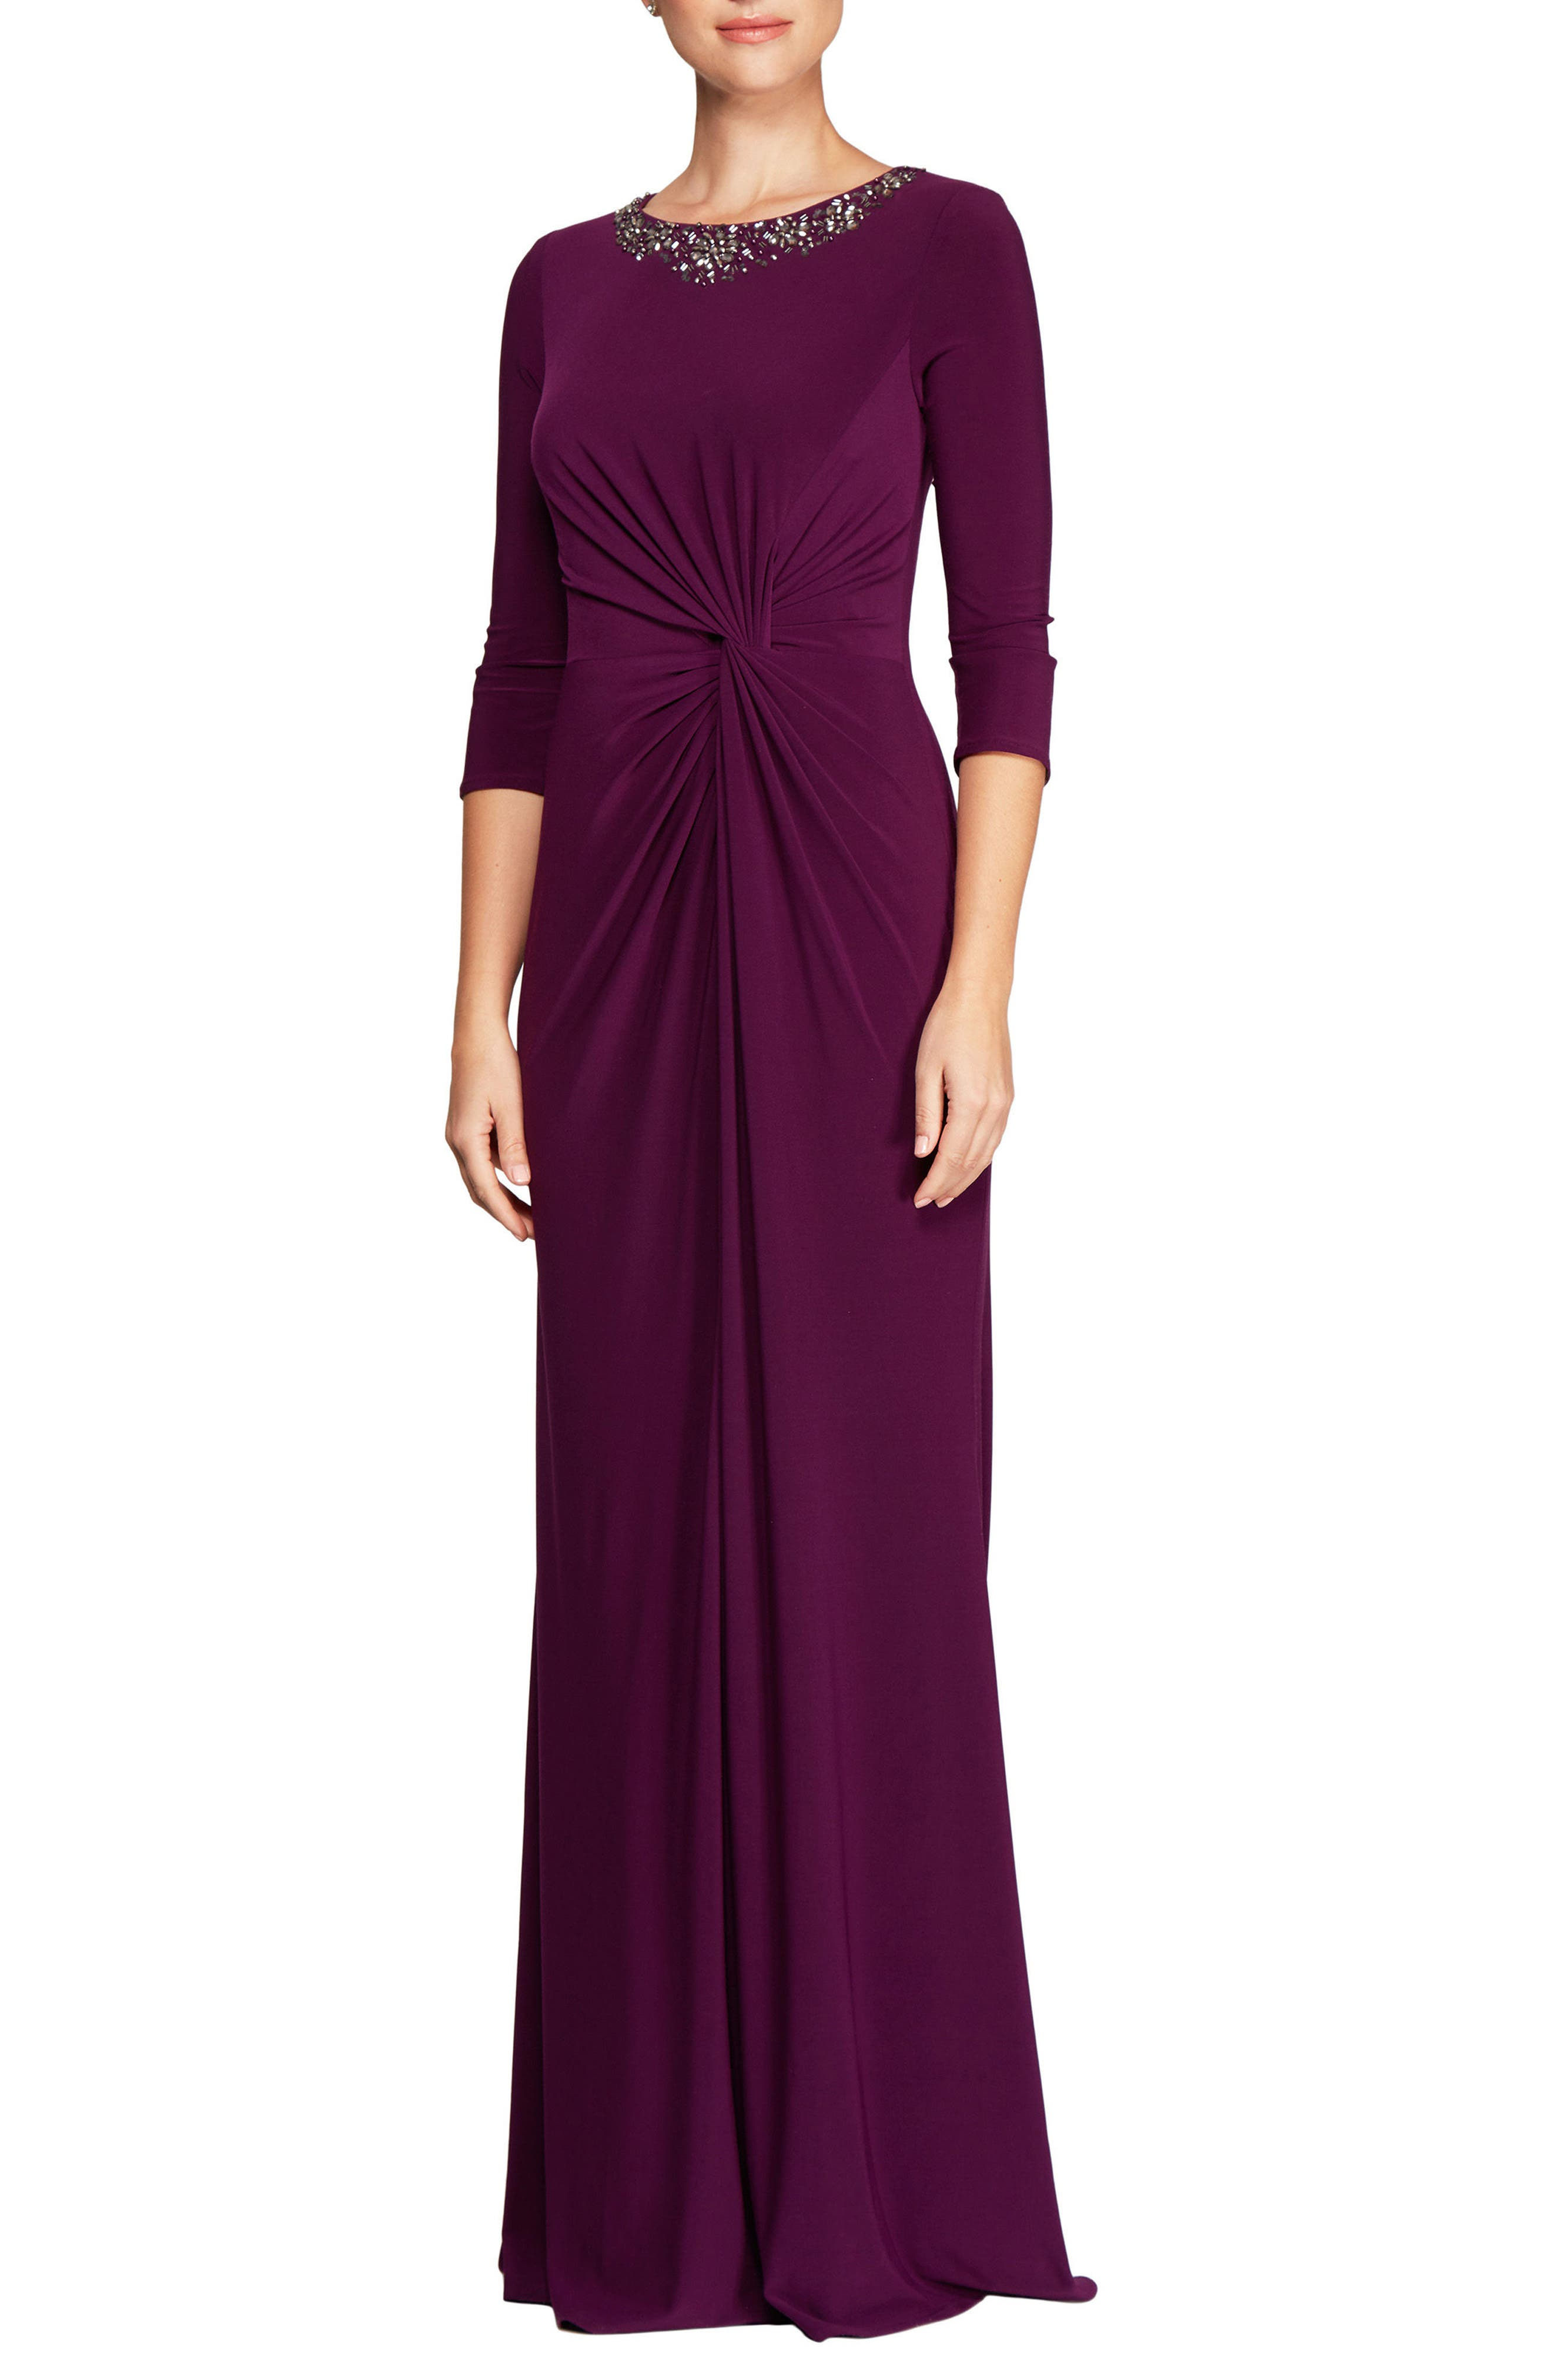 Knotted A-Line Gown,                         Main,                         color, Passion